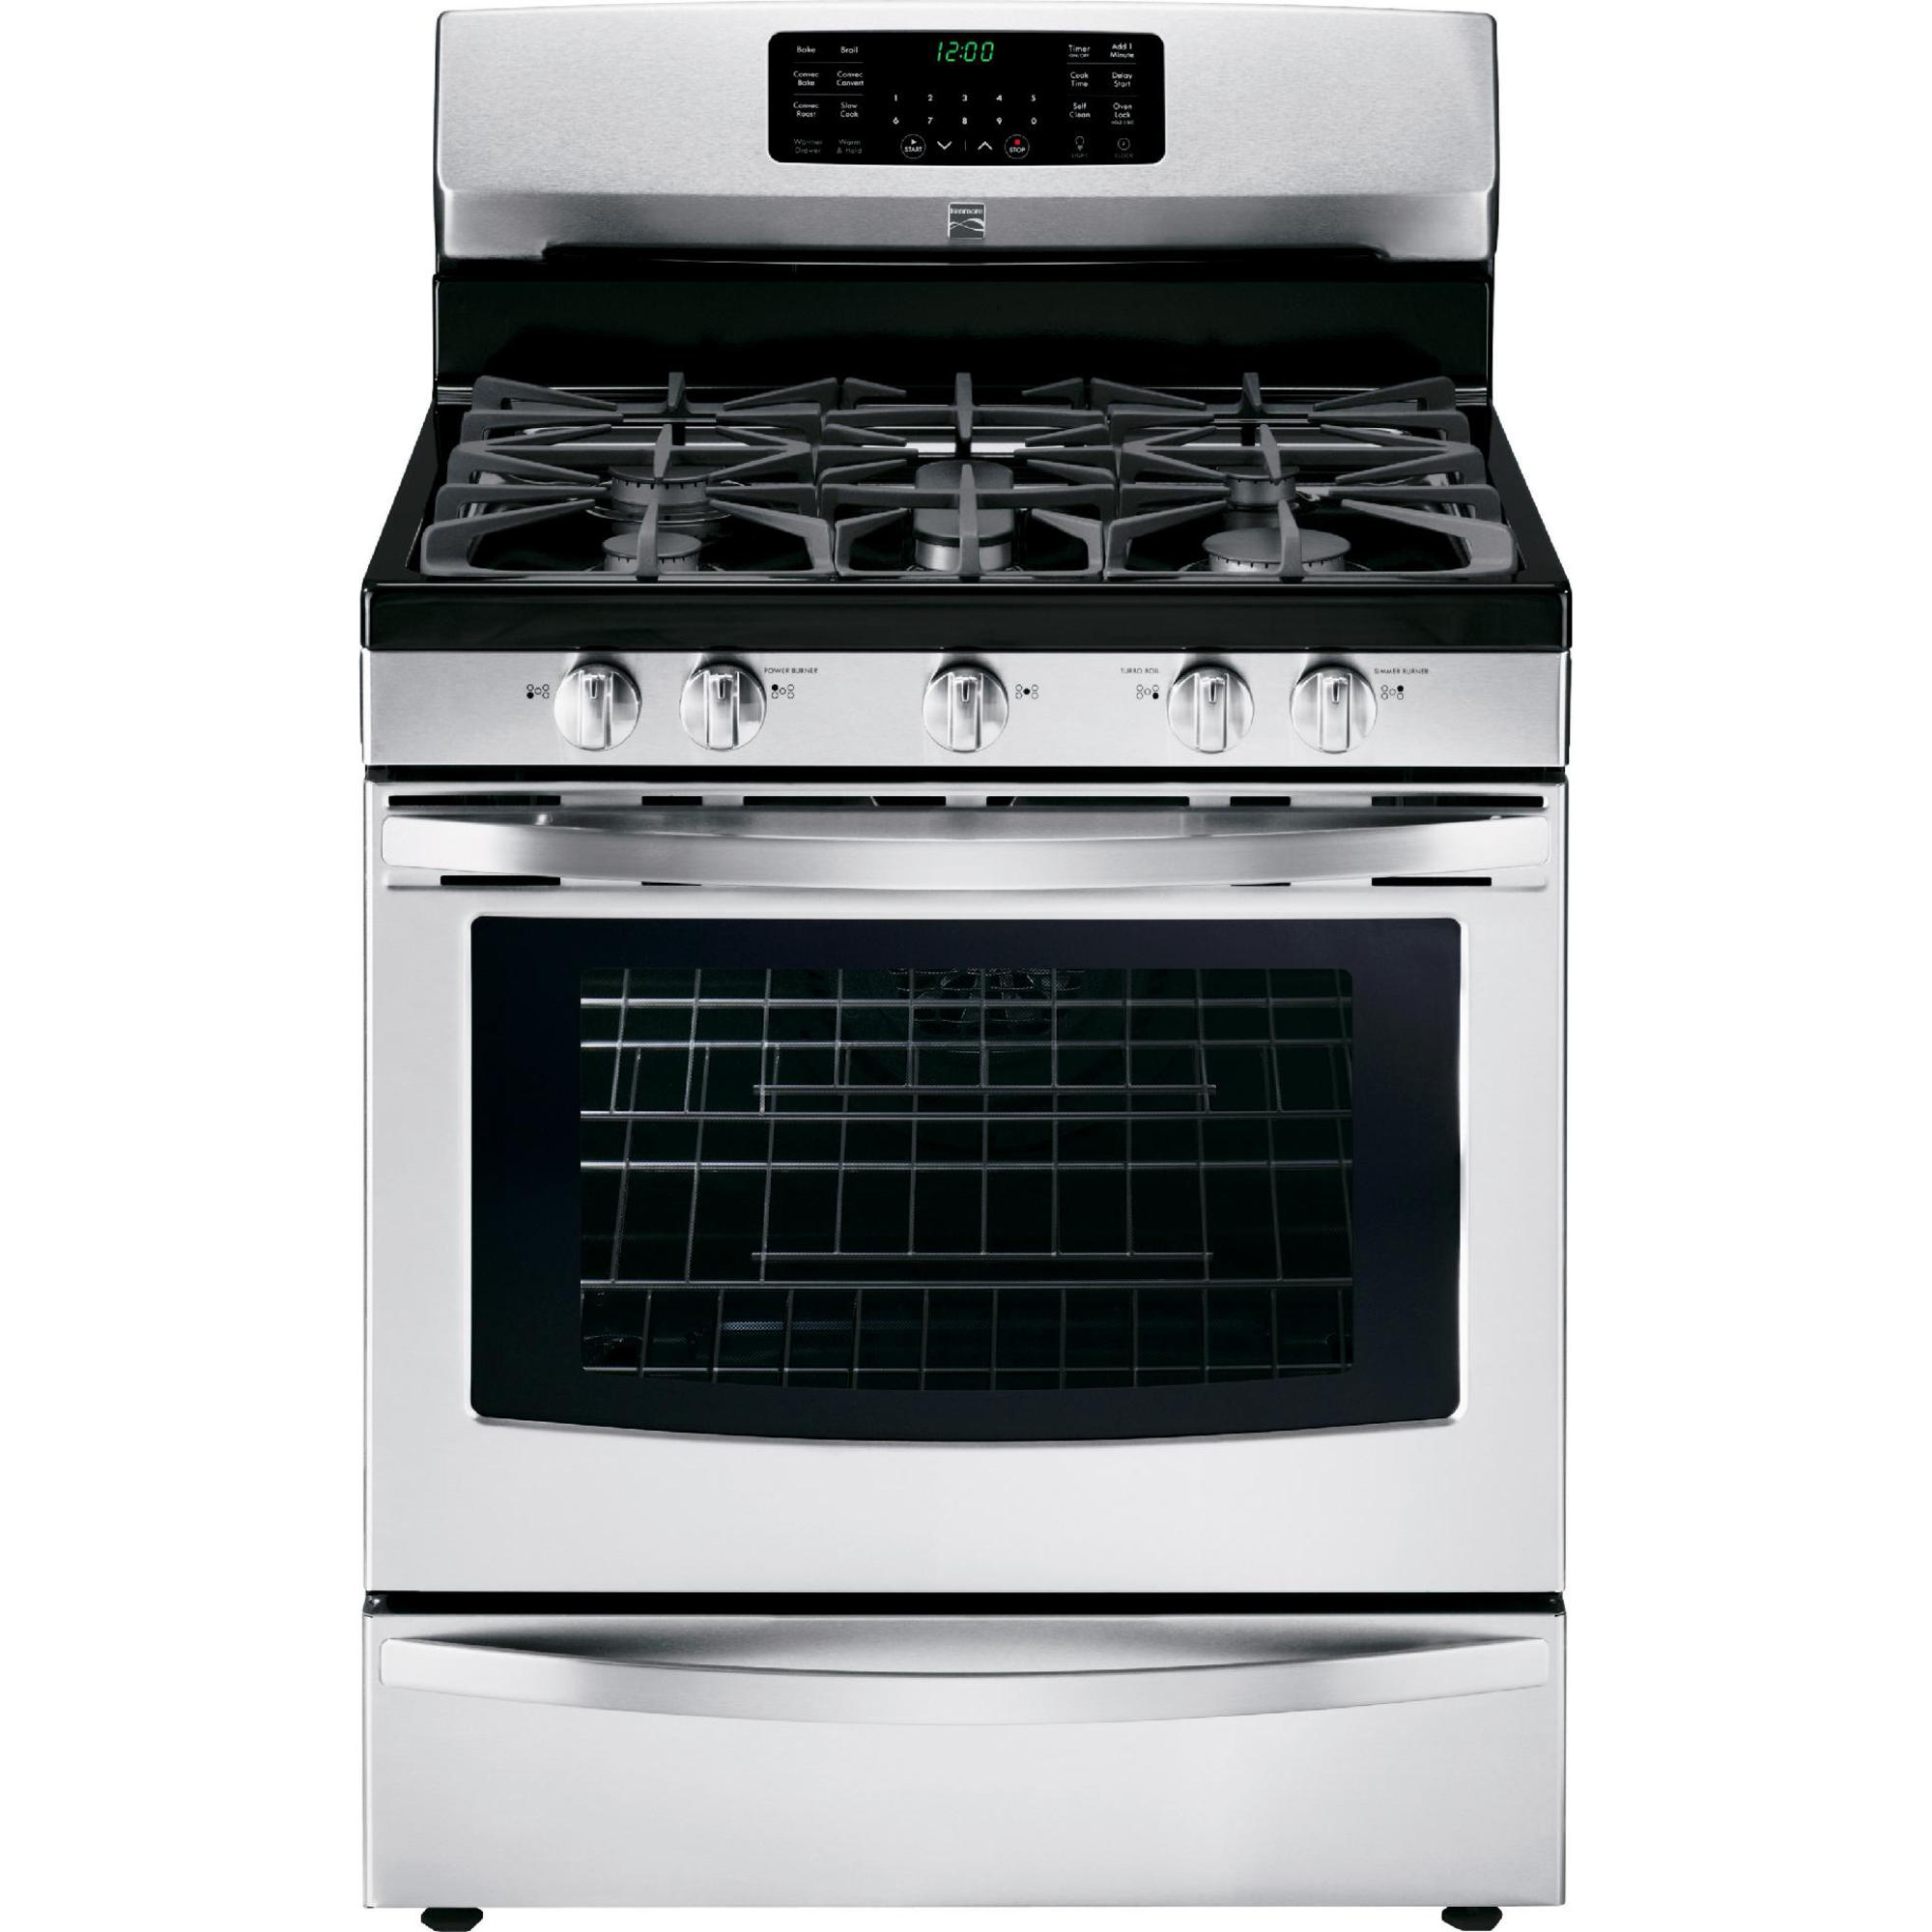 hight resolution of kenmore convection oven schematic trusted wiring diagram wiring electric stove oven kenmore electric oven wiring diagram